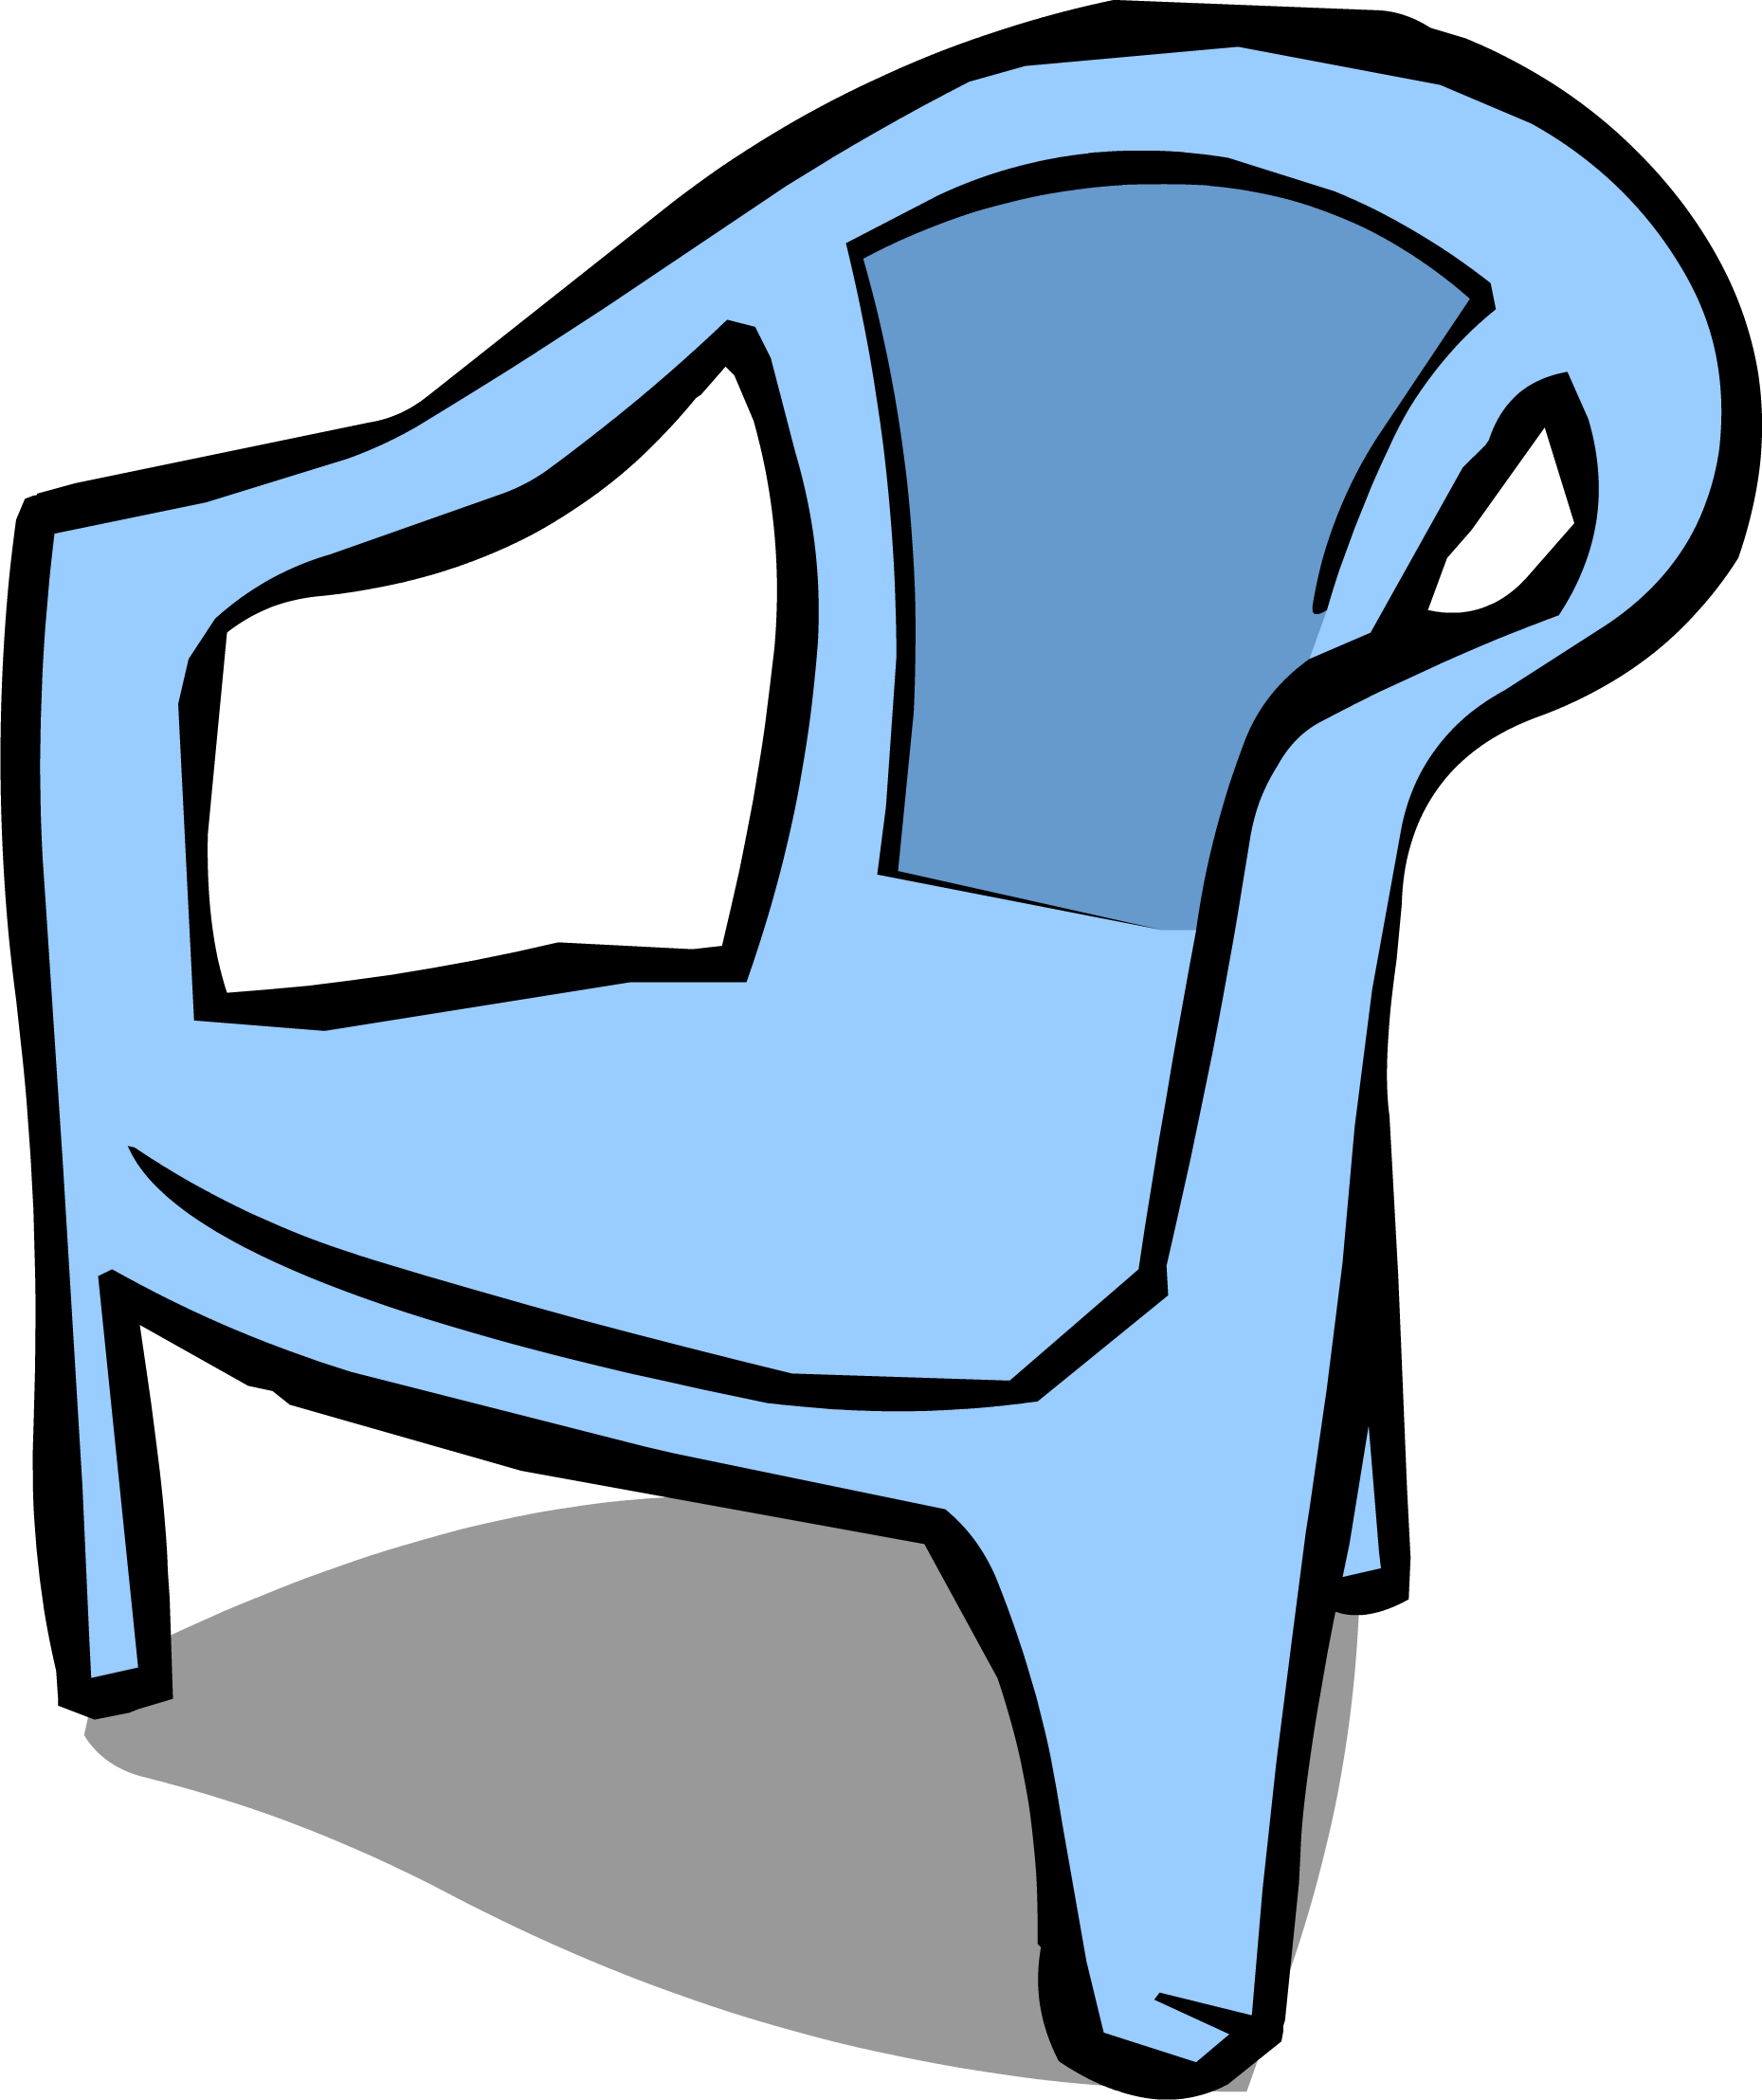 Furniture clipart blue chair. Image sprite png club